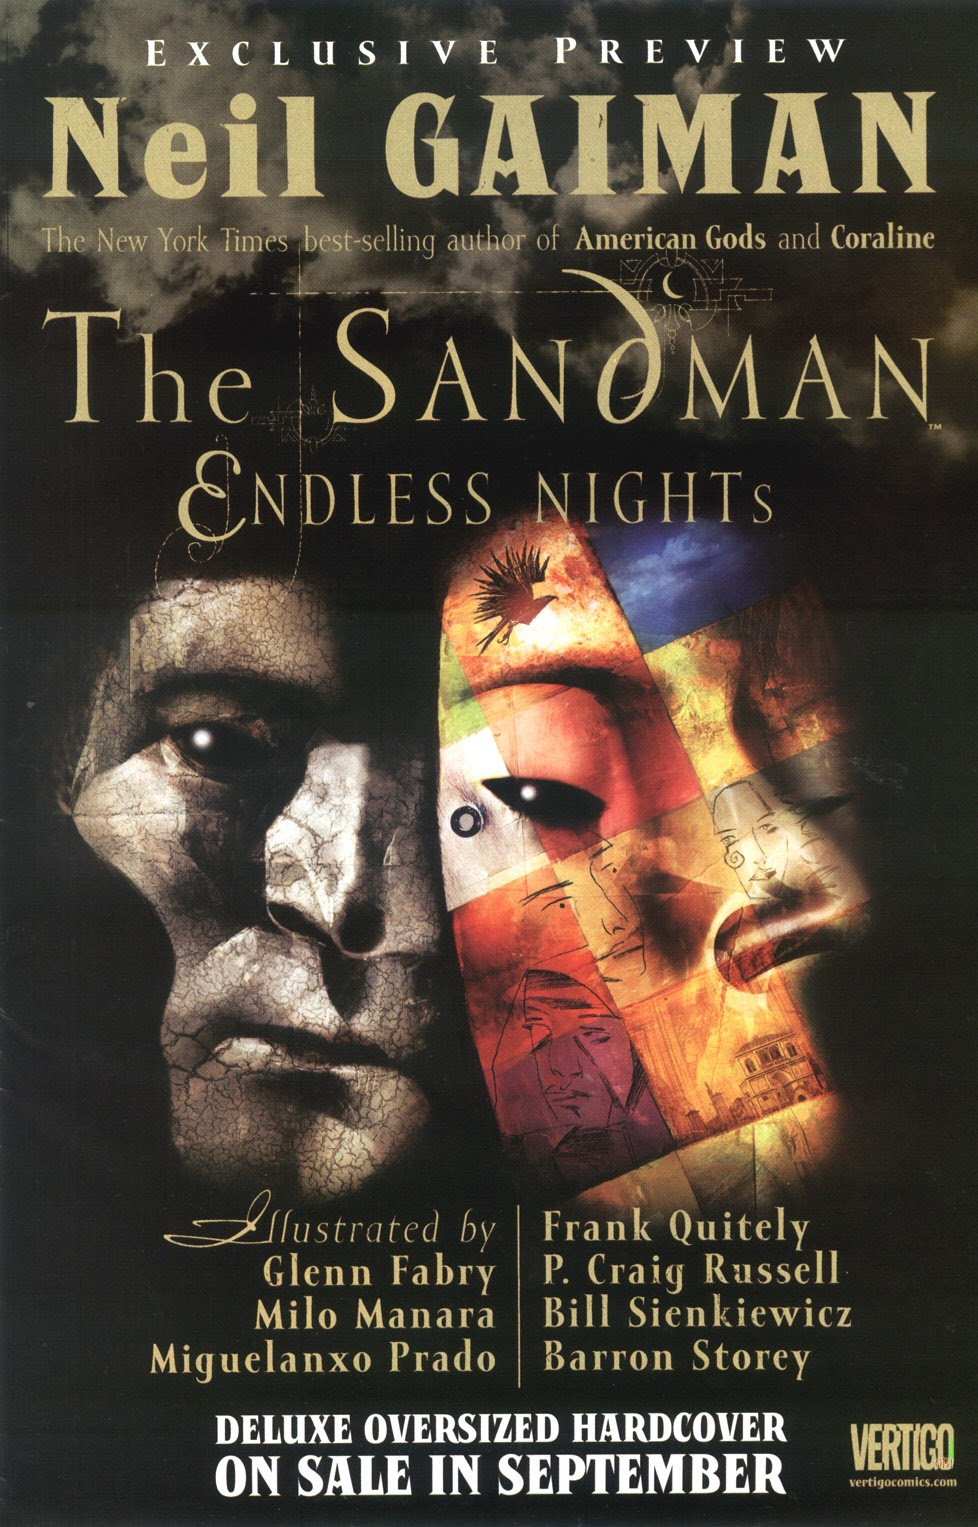 Read online The Sandman: Endless Nights comic -  Issue # _Preview - 1